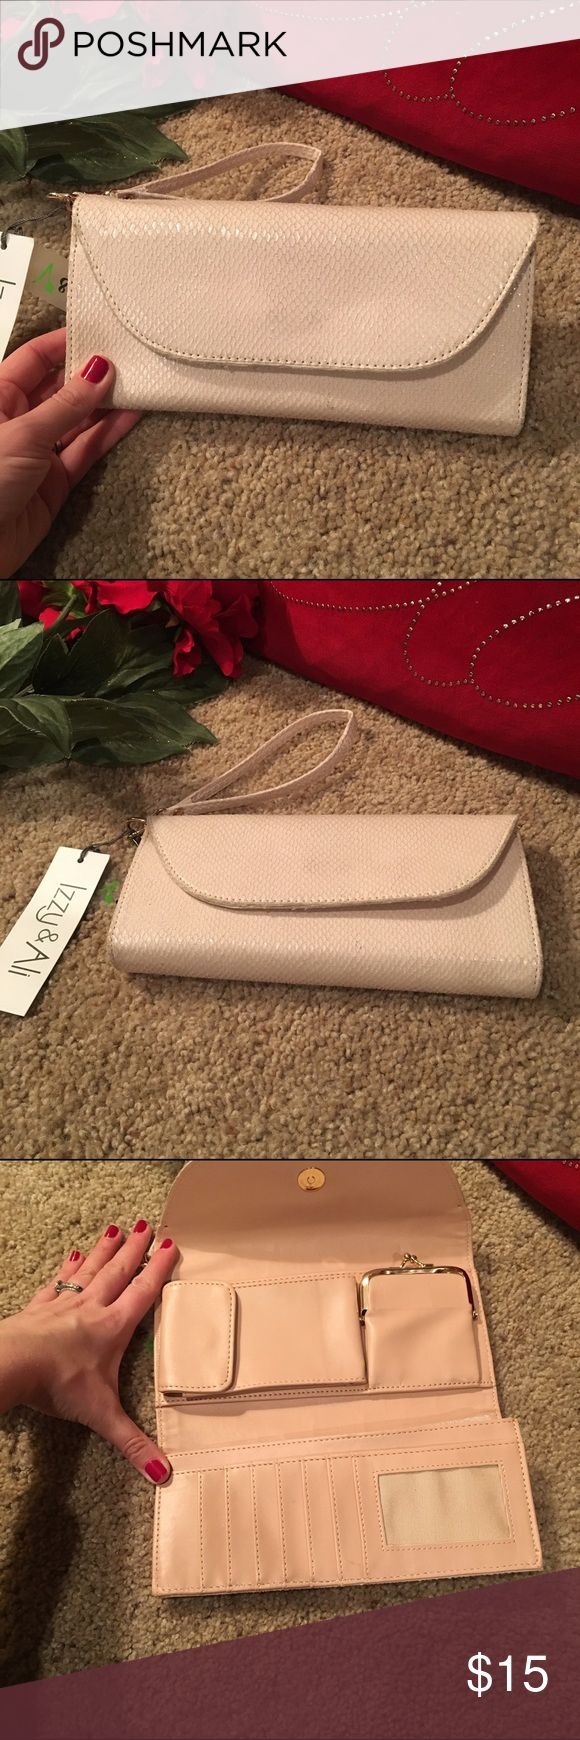 Nude clutch bag Nude clutch bag/wallet. NWT! Has areas for cash, credit cards, change and a small phone pocket. I tried to fit my iPhone 6s with otterbox case and it did not fit. So it would probably have to be a smaller iPhone to fit in there. Bags Clutches & Wristlets